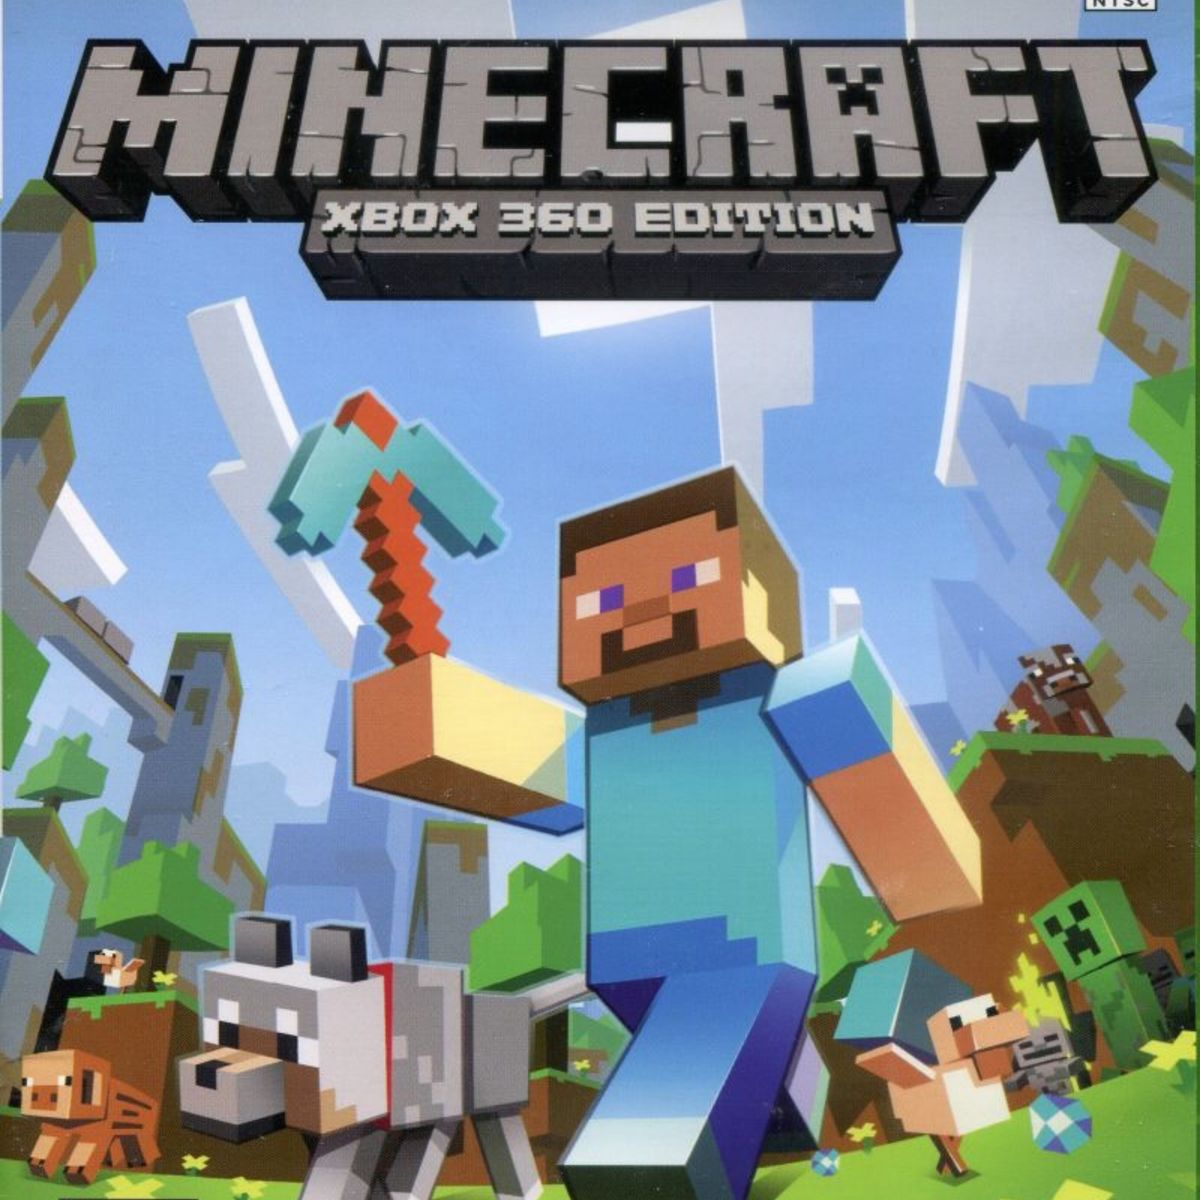 283094-minecraft-xbox-360-edition-xbox-360-front-cover.jpg